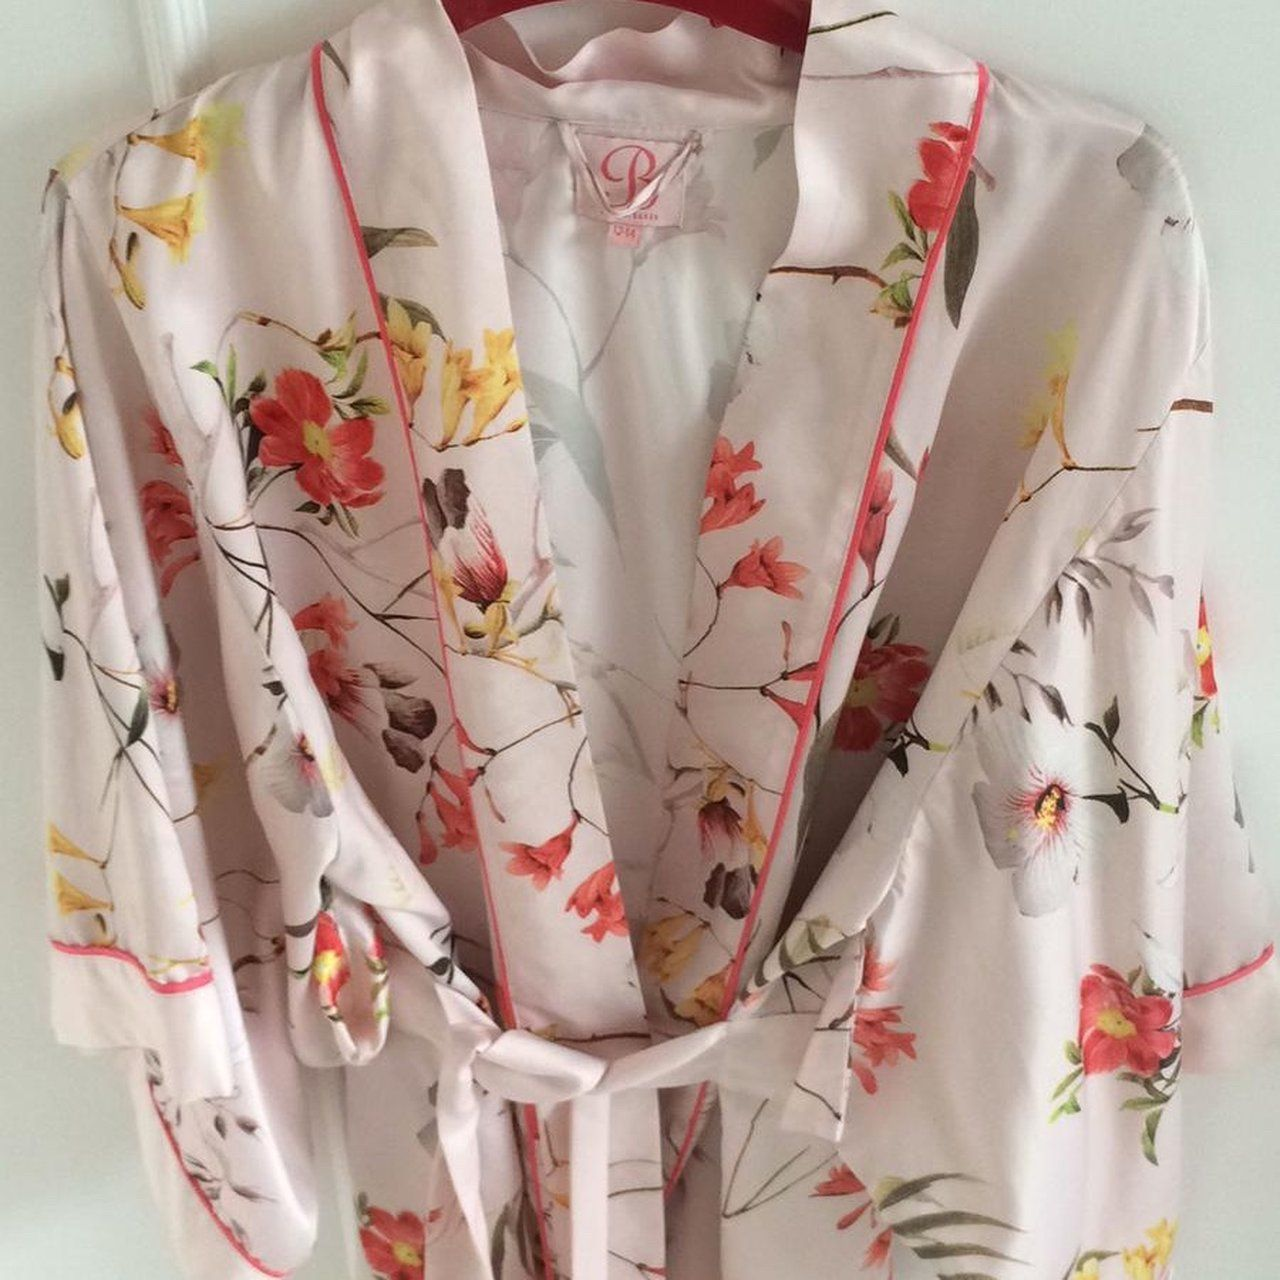 a5d0fa9a03d Ted Baker dressing gown for sale. Light and pretty. Size but - Depop